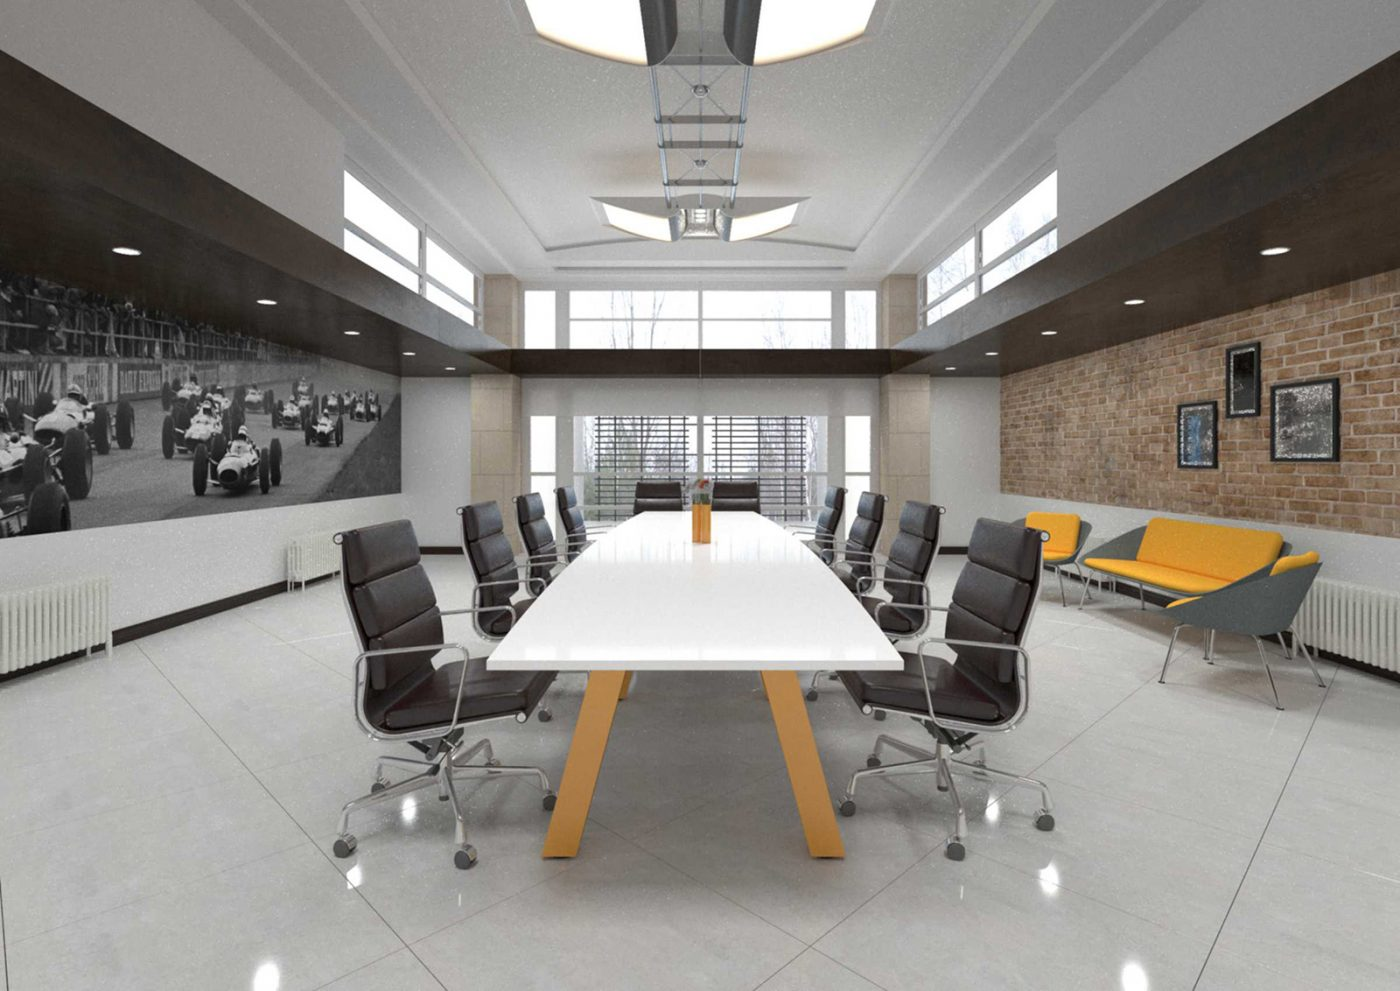 force boardroom, meeting table, boat shaped table, white MFC